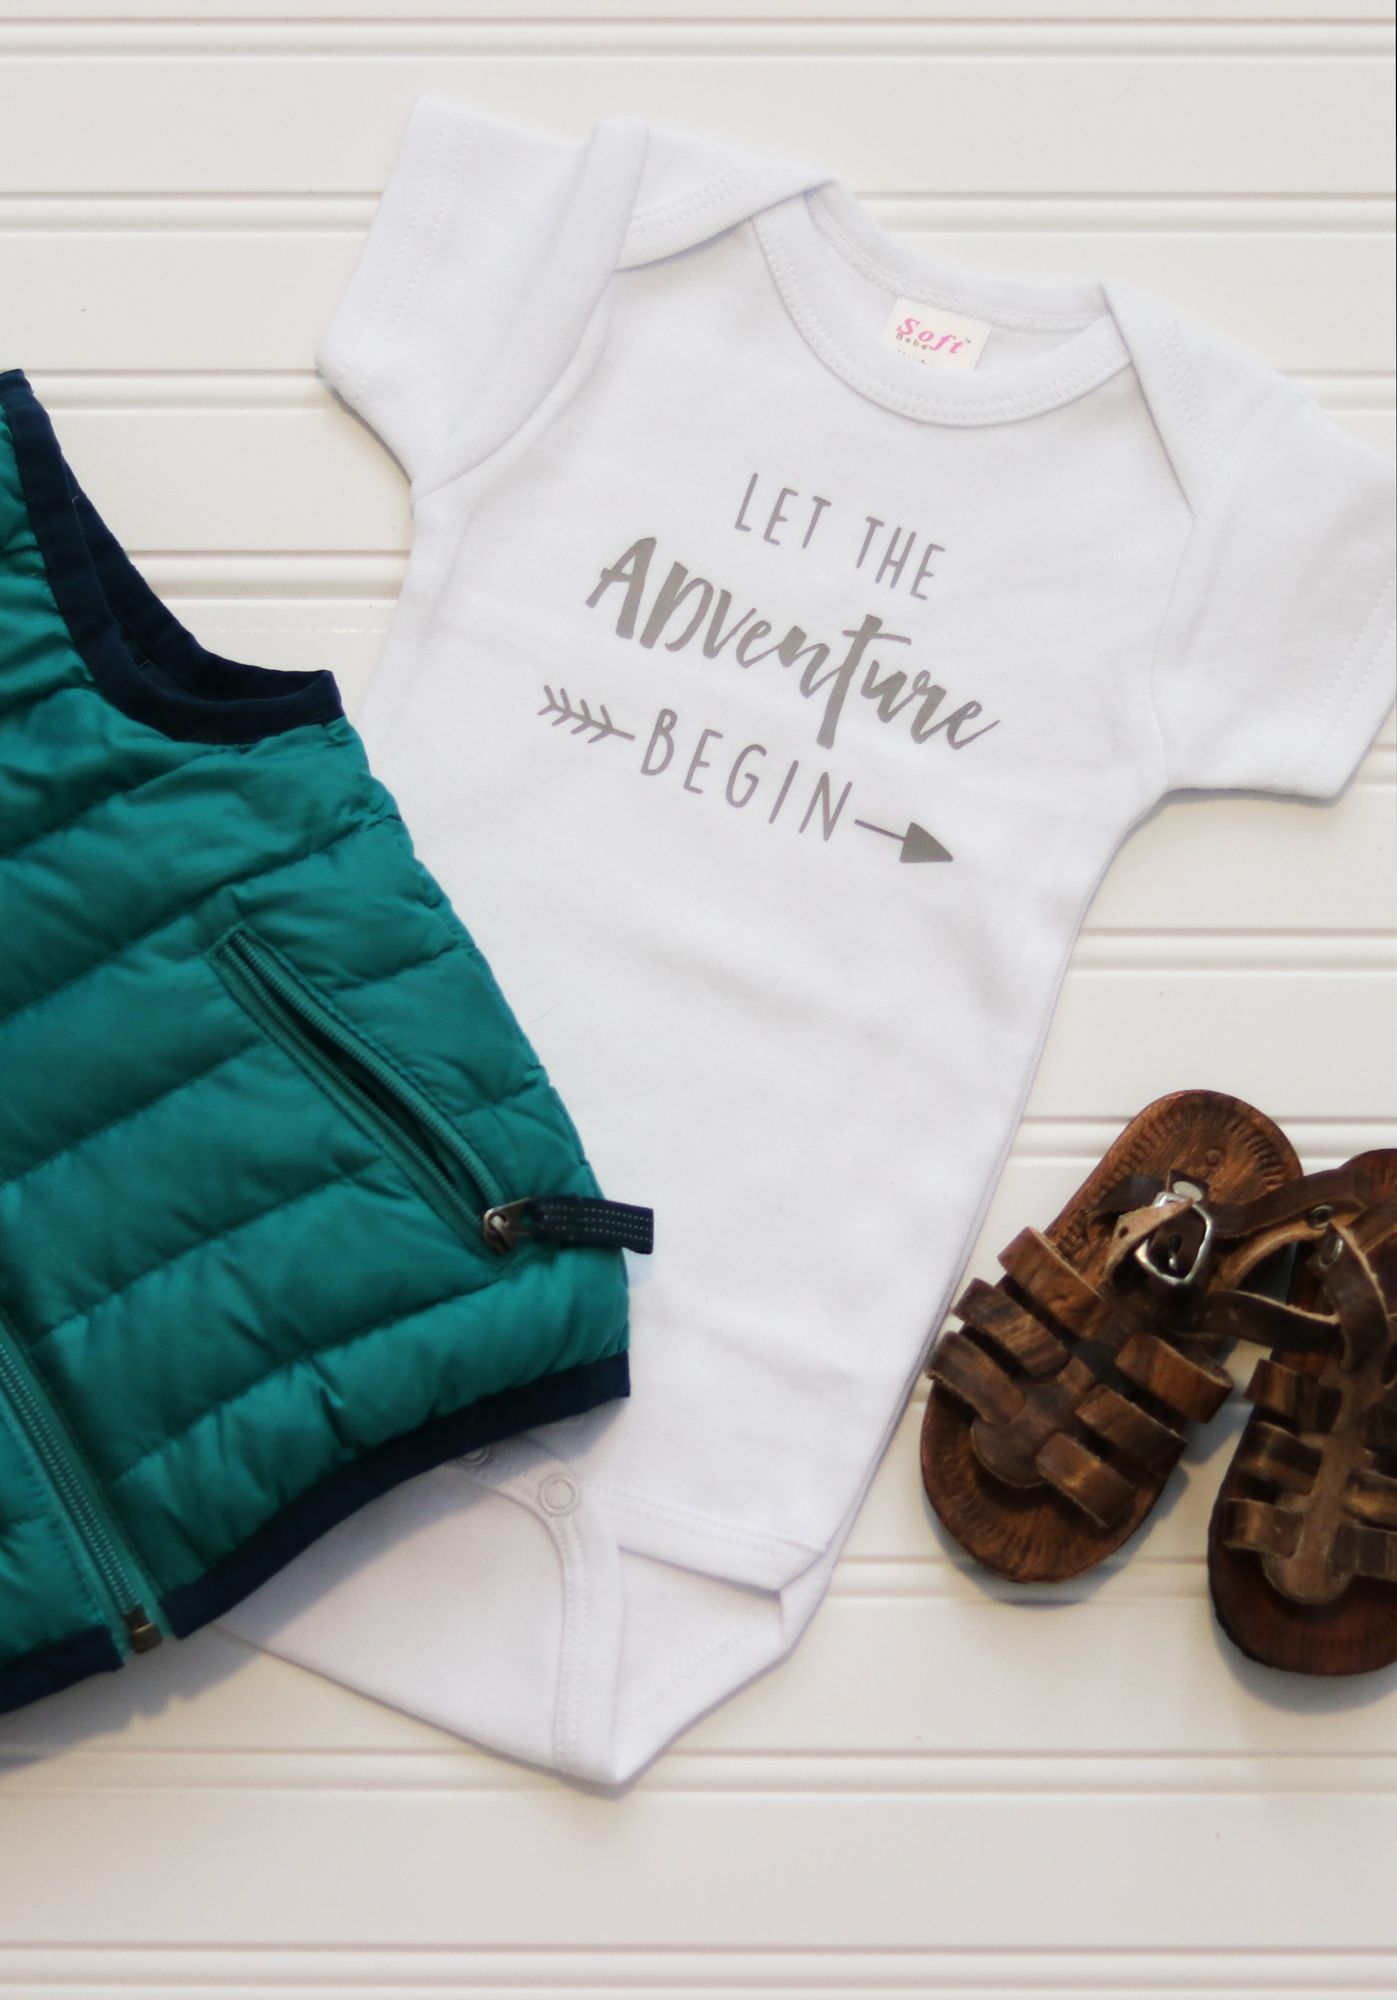 Let the adventure begin Perfect baby onesie to use as a pregnancy